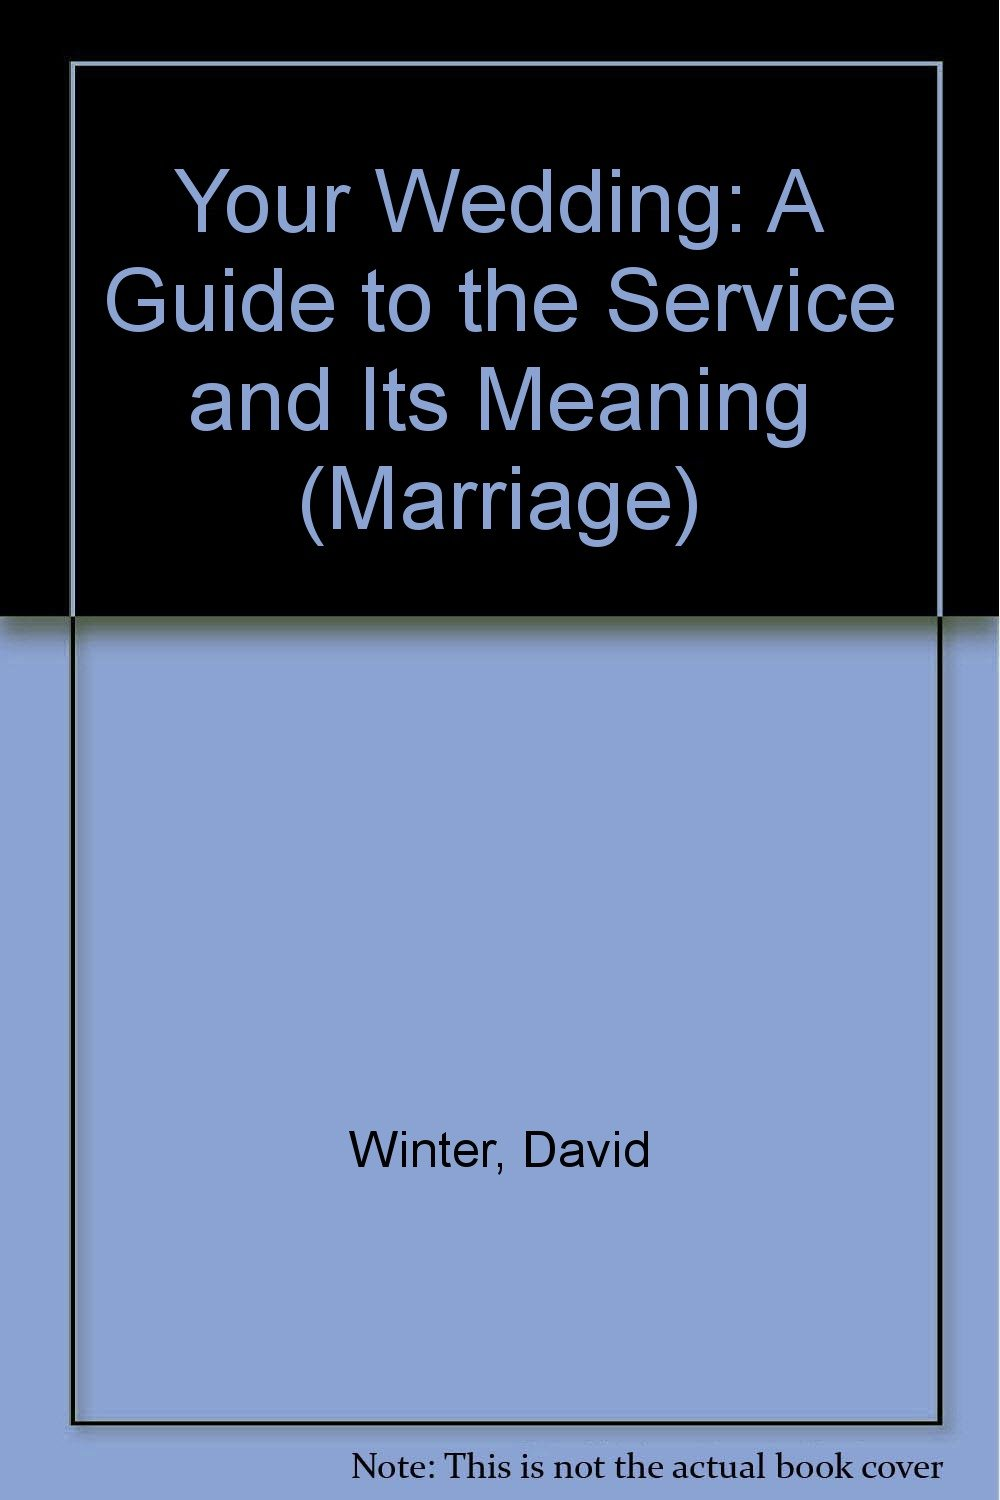 Your Wedding: A Guide to the Service and Its Meaning (Marriage)